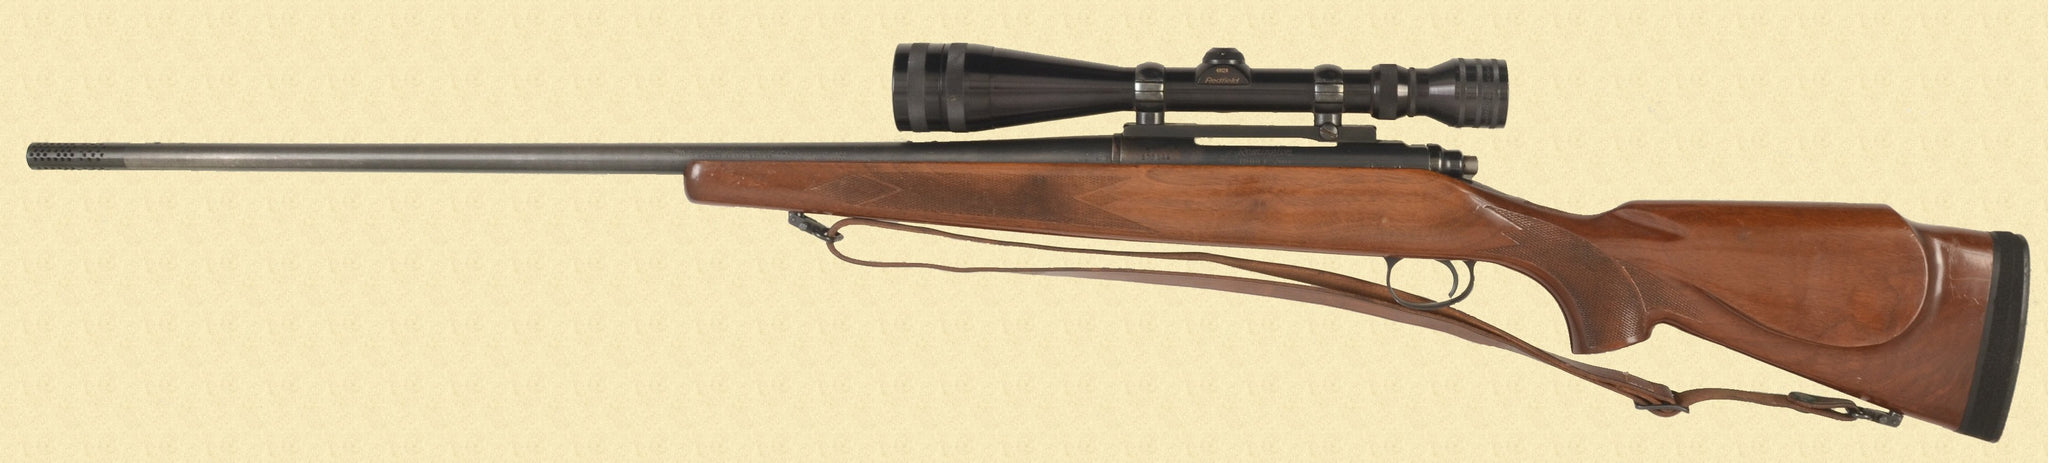 REMINGTON MODEL 700 WITH SCOPE